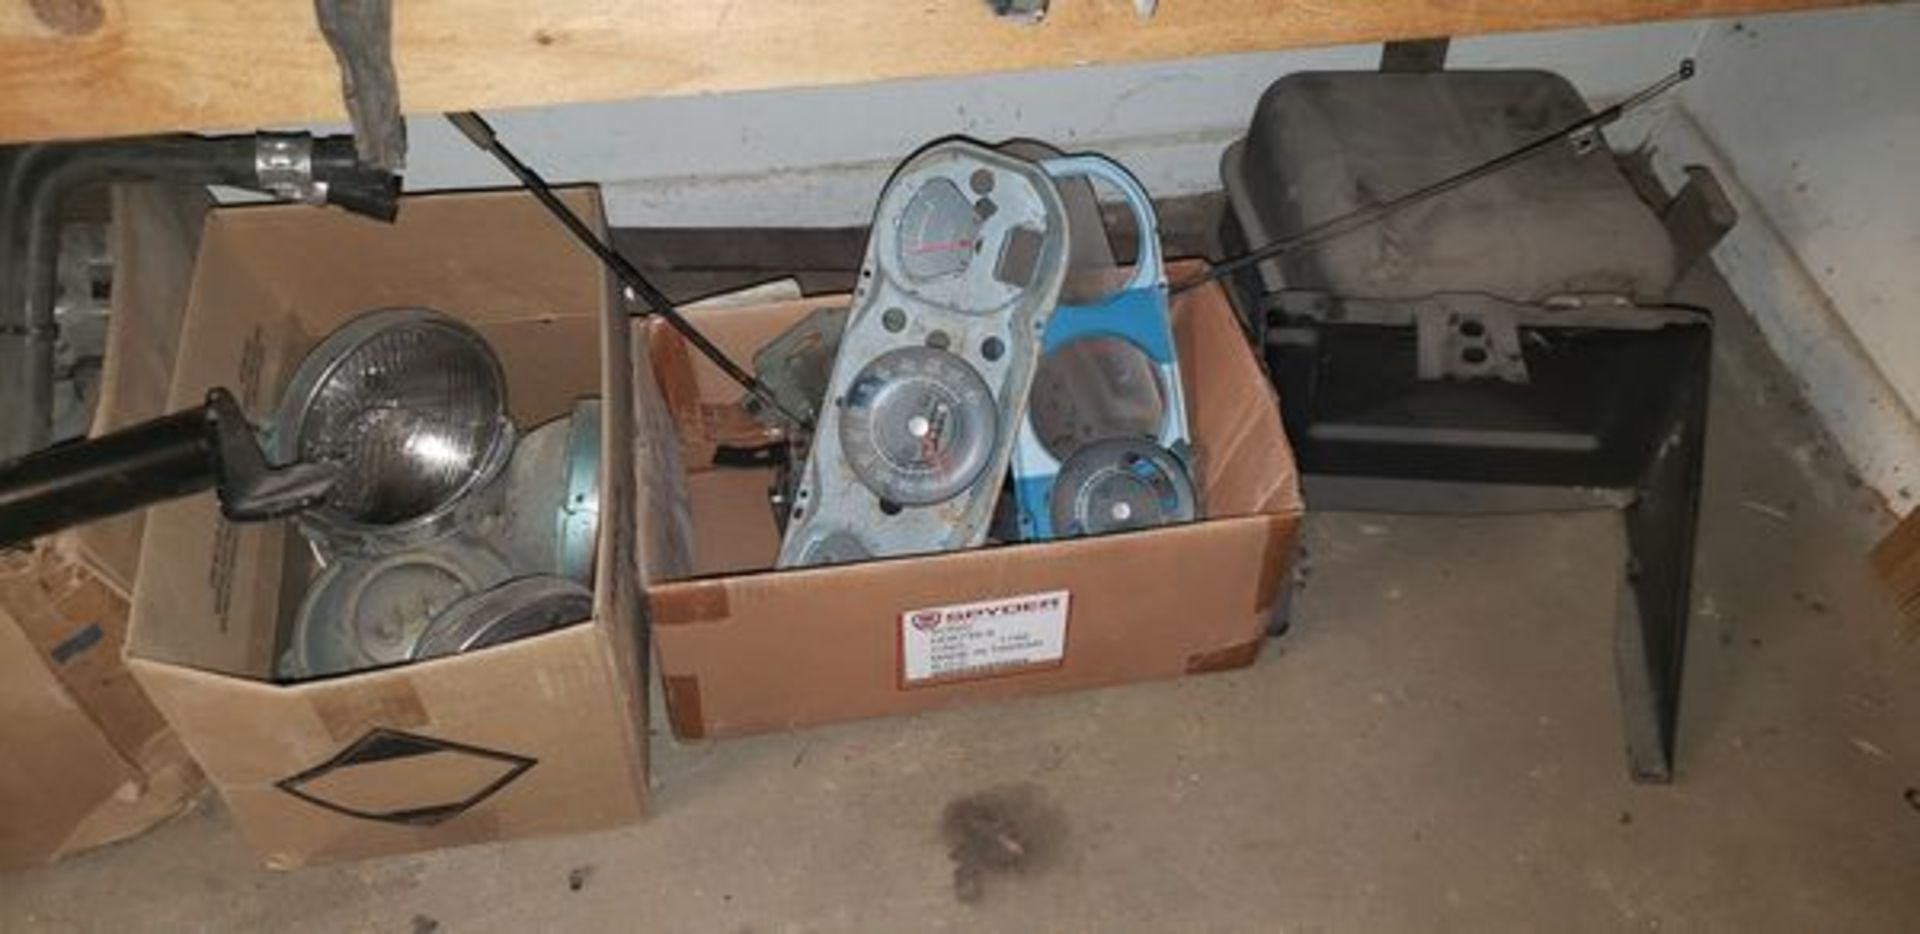 LOT OF ASSORTED CAR PARTS ON 3 SHELVES AND FLOOR - Image 10 of 12